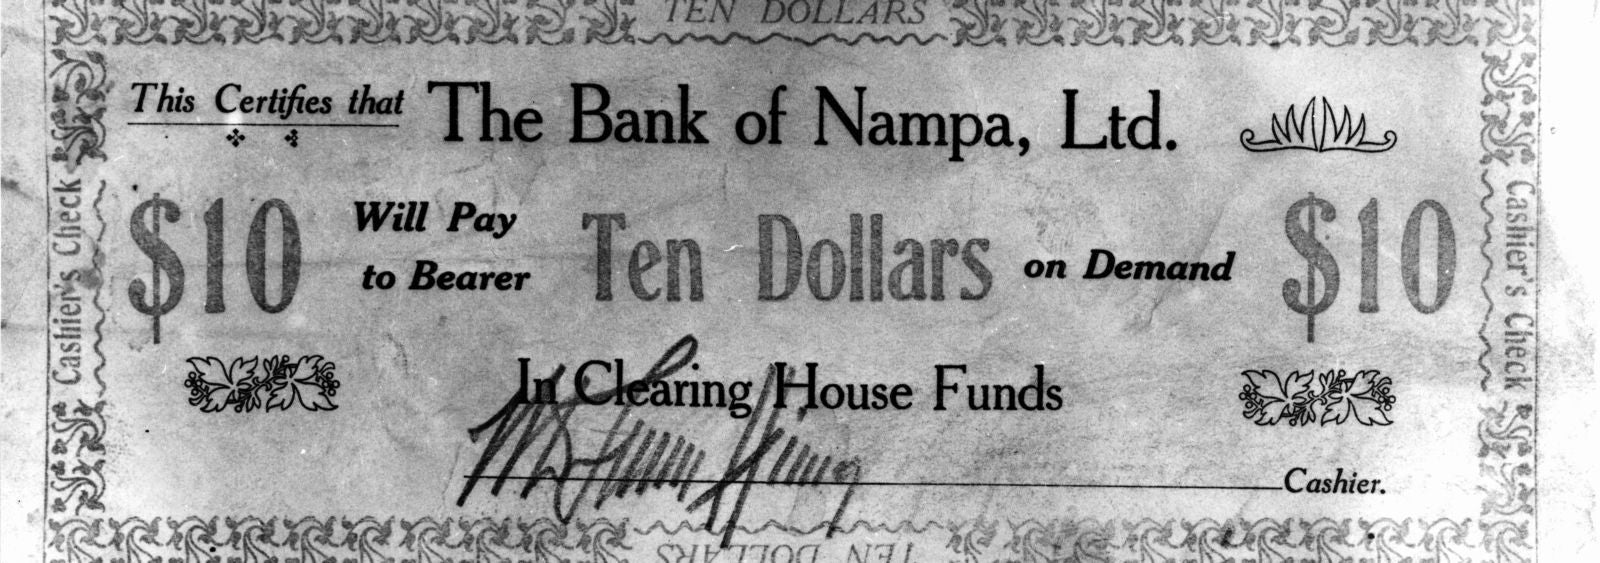 Ten Dollar Note - Bank of Nampa